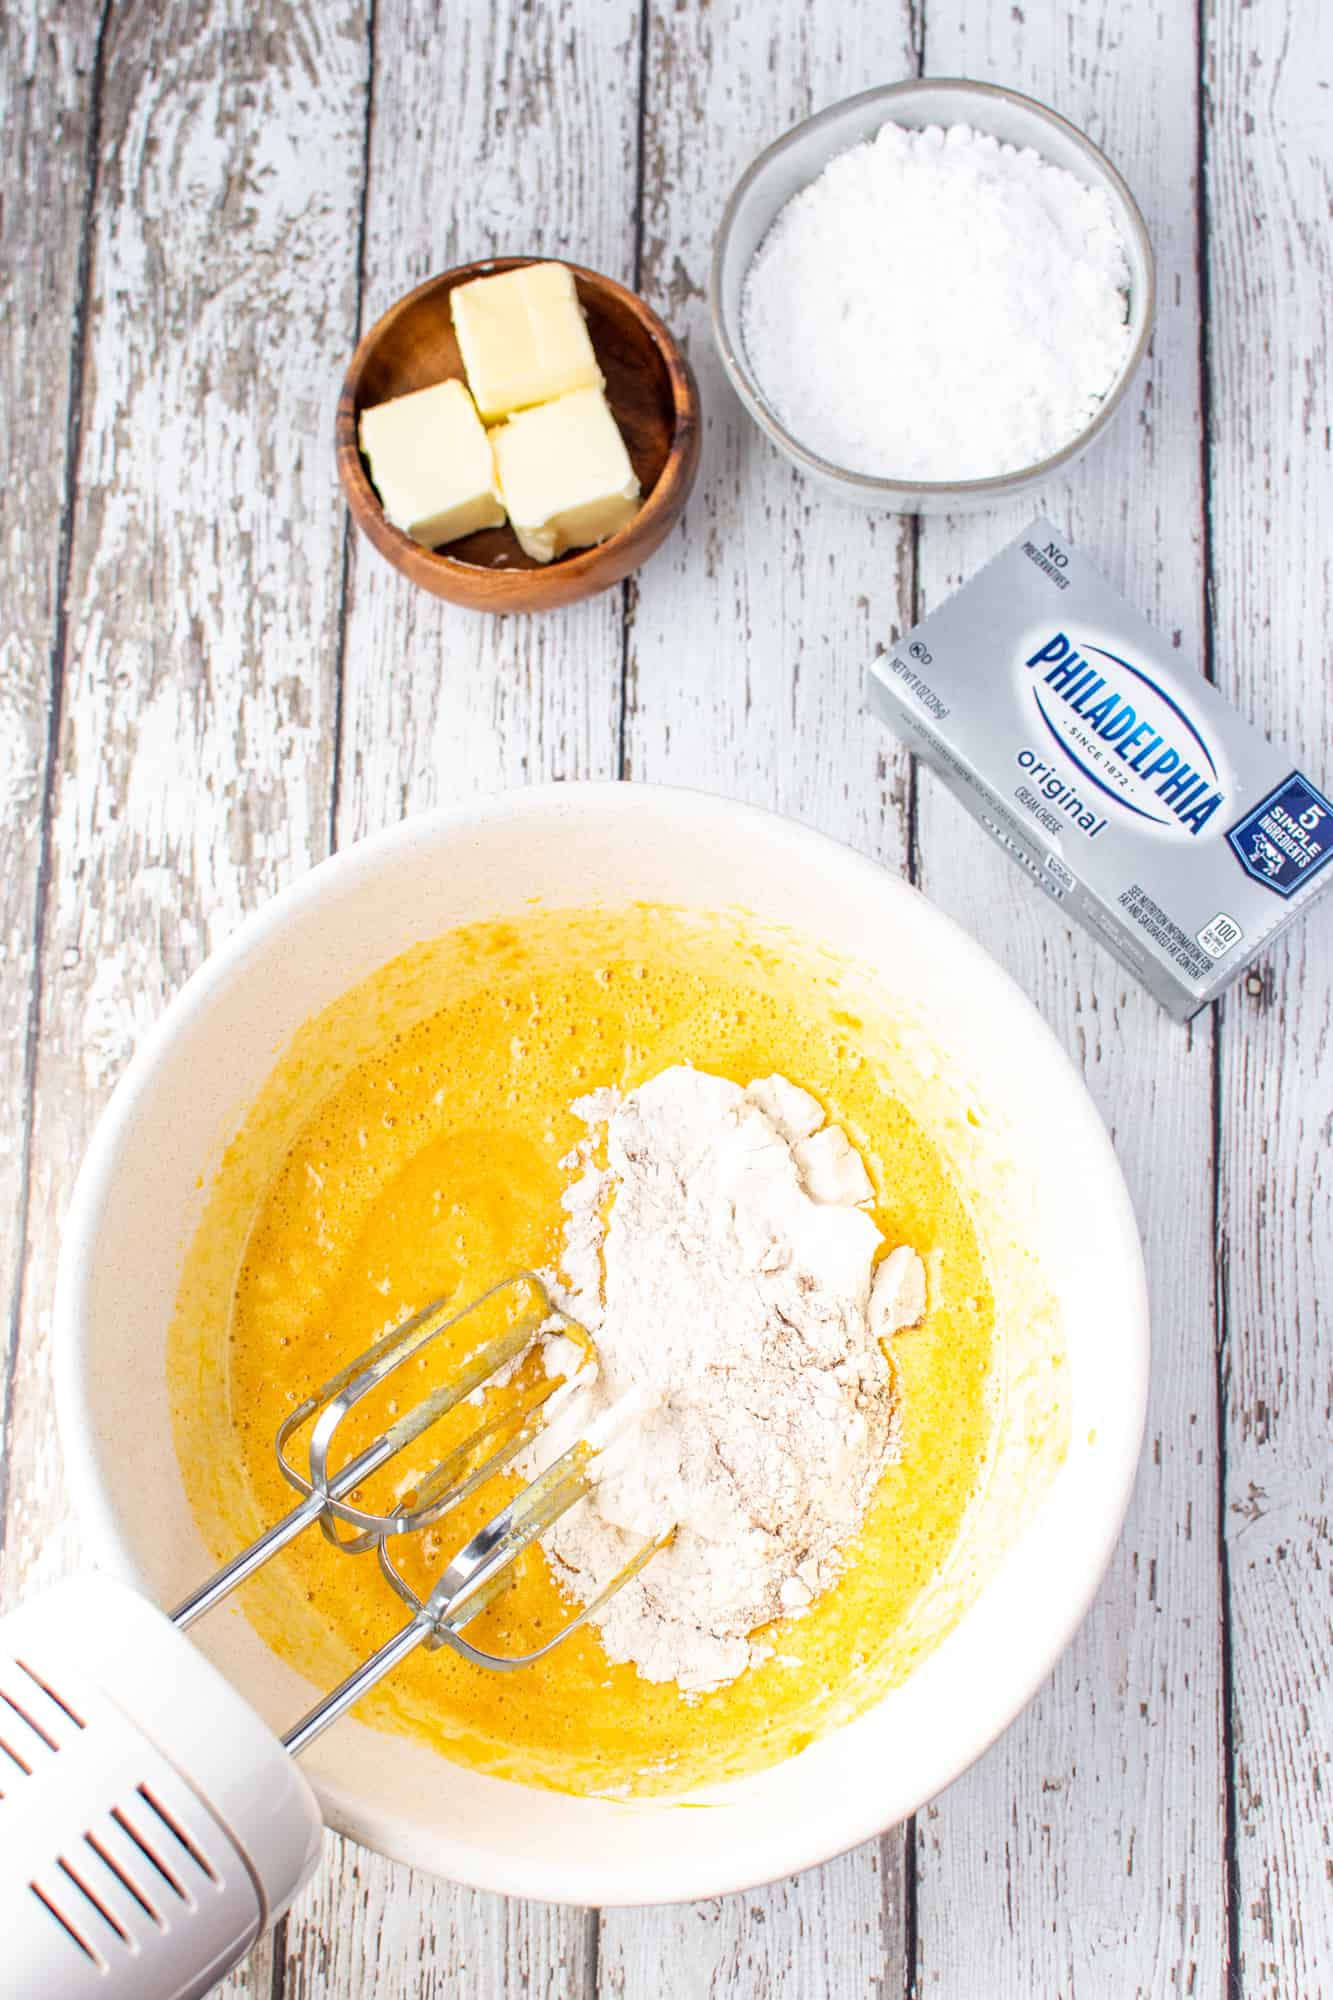 flour mixture added to the pumpkin egg mixture in a bowl.